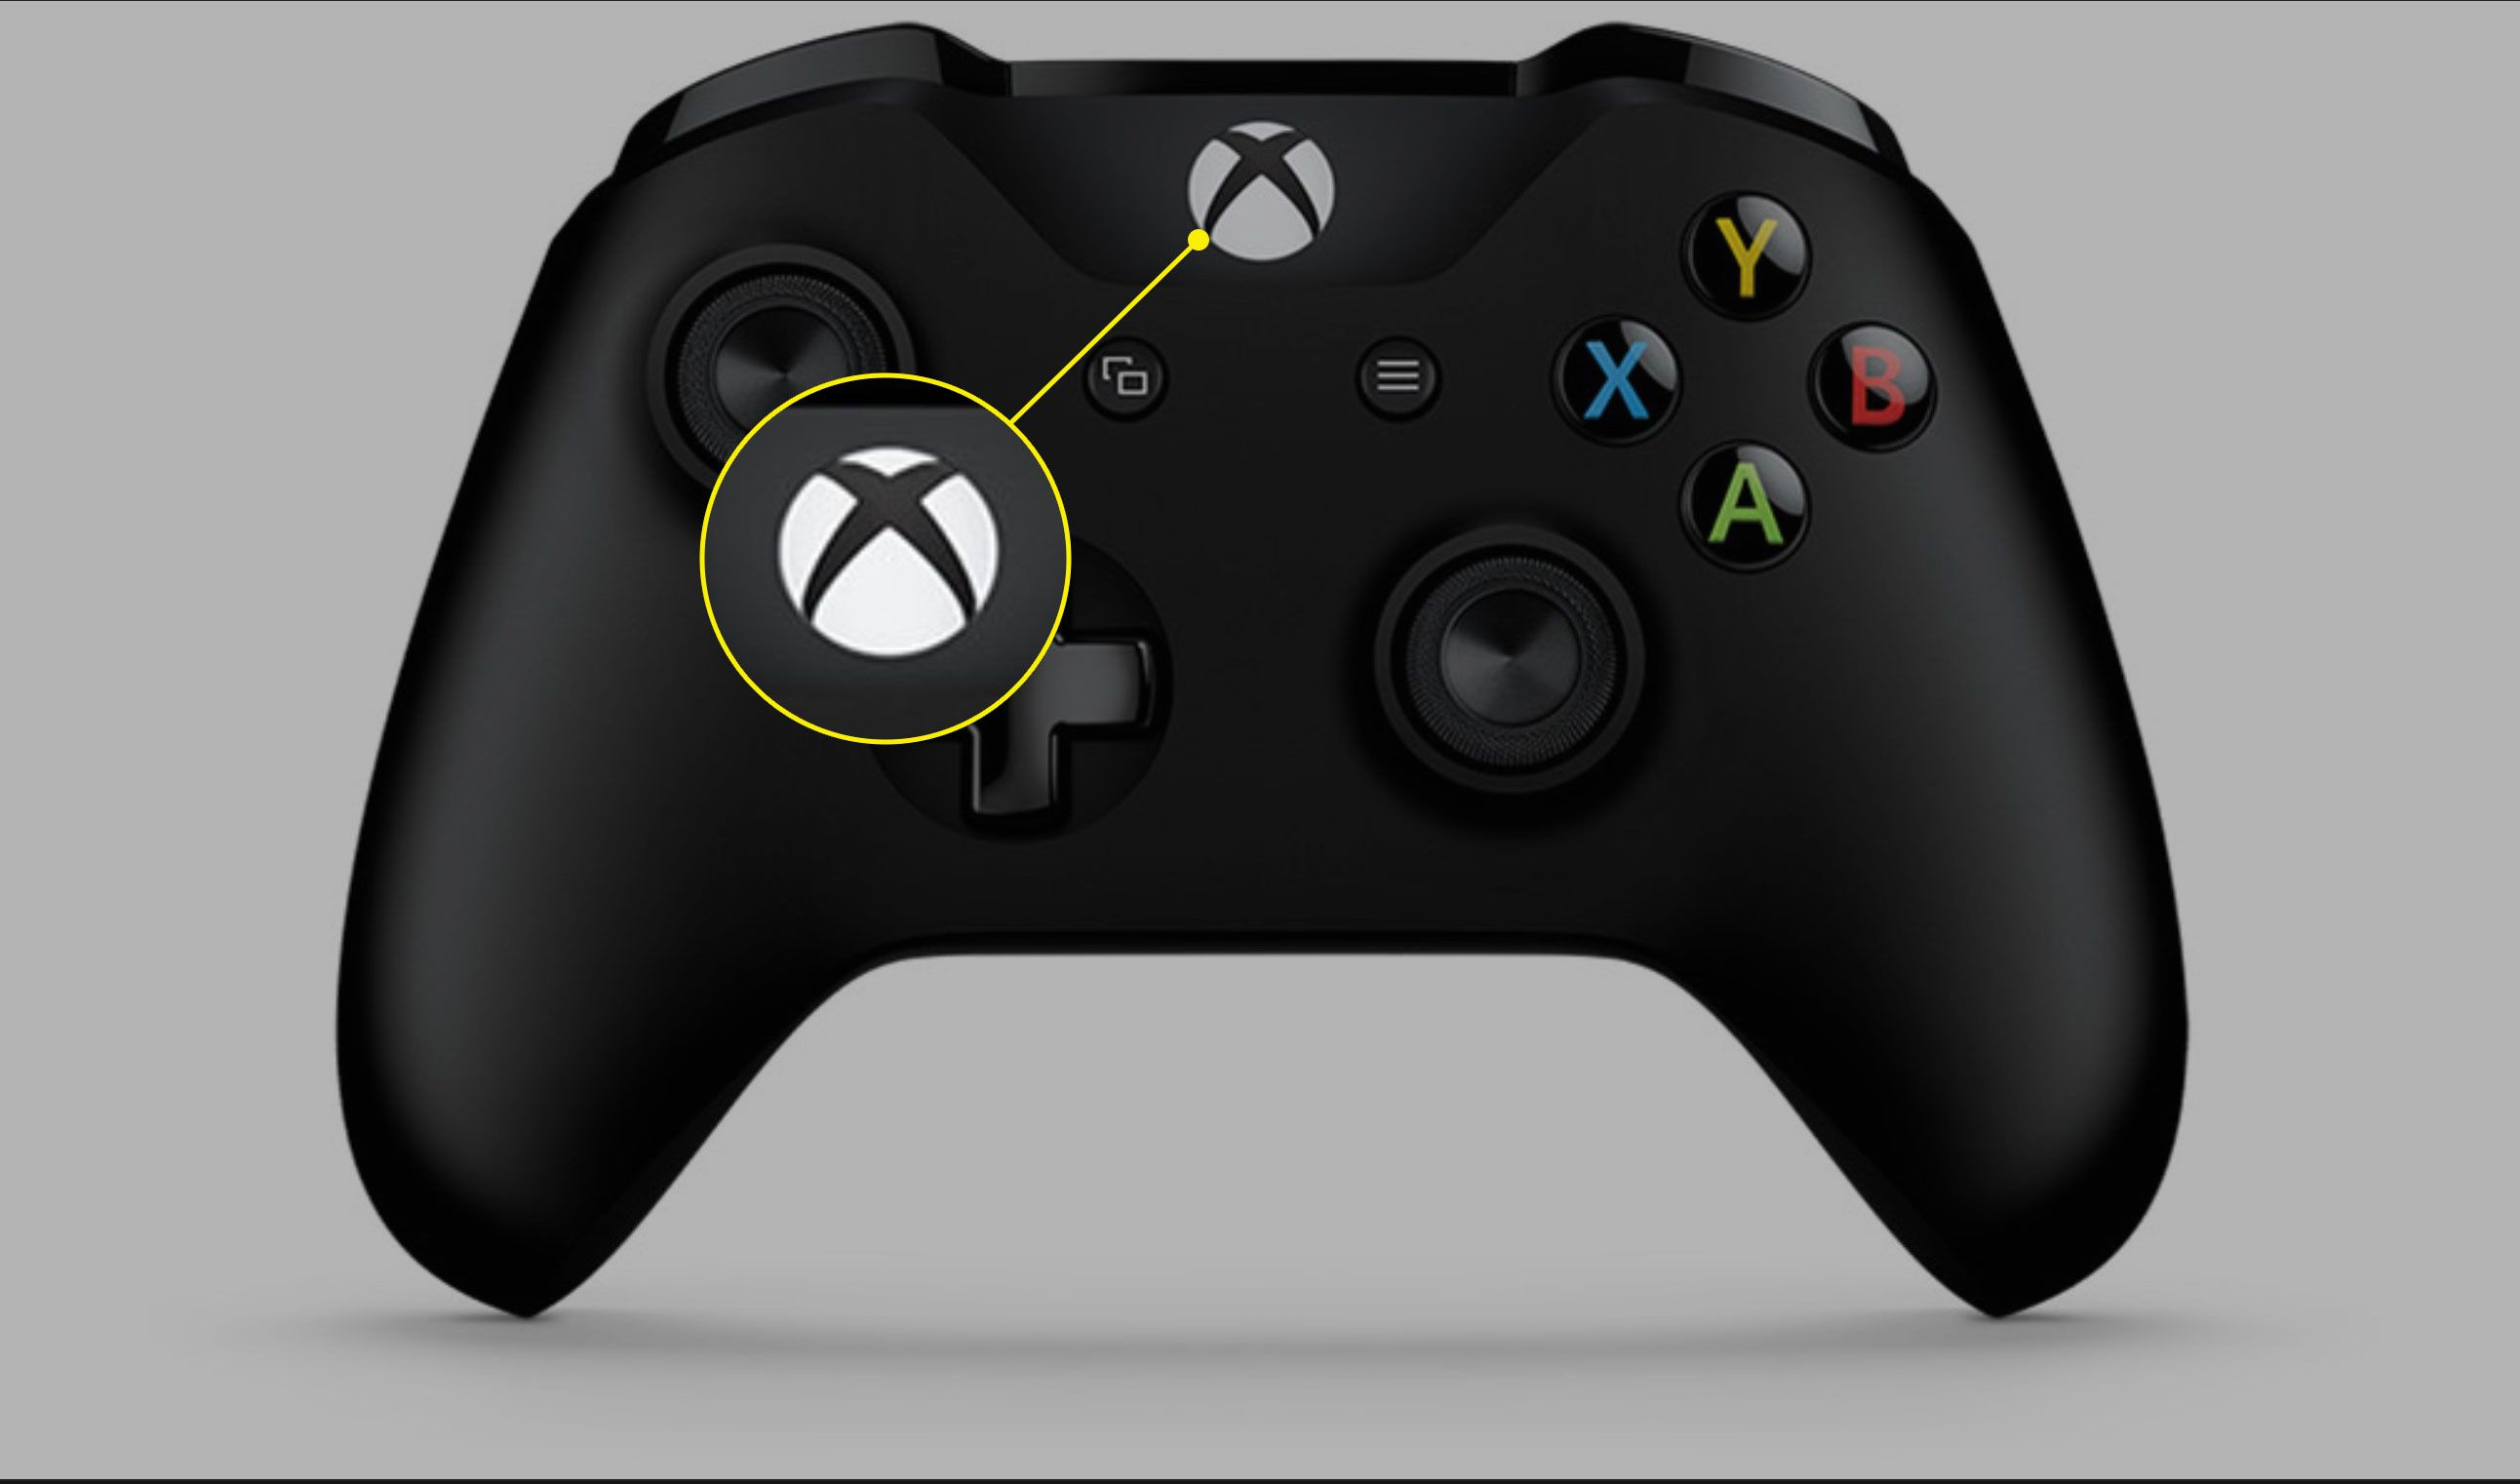 The Home button on an Xbox One controller